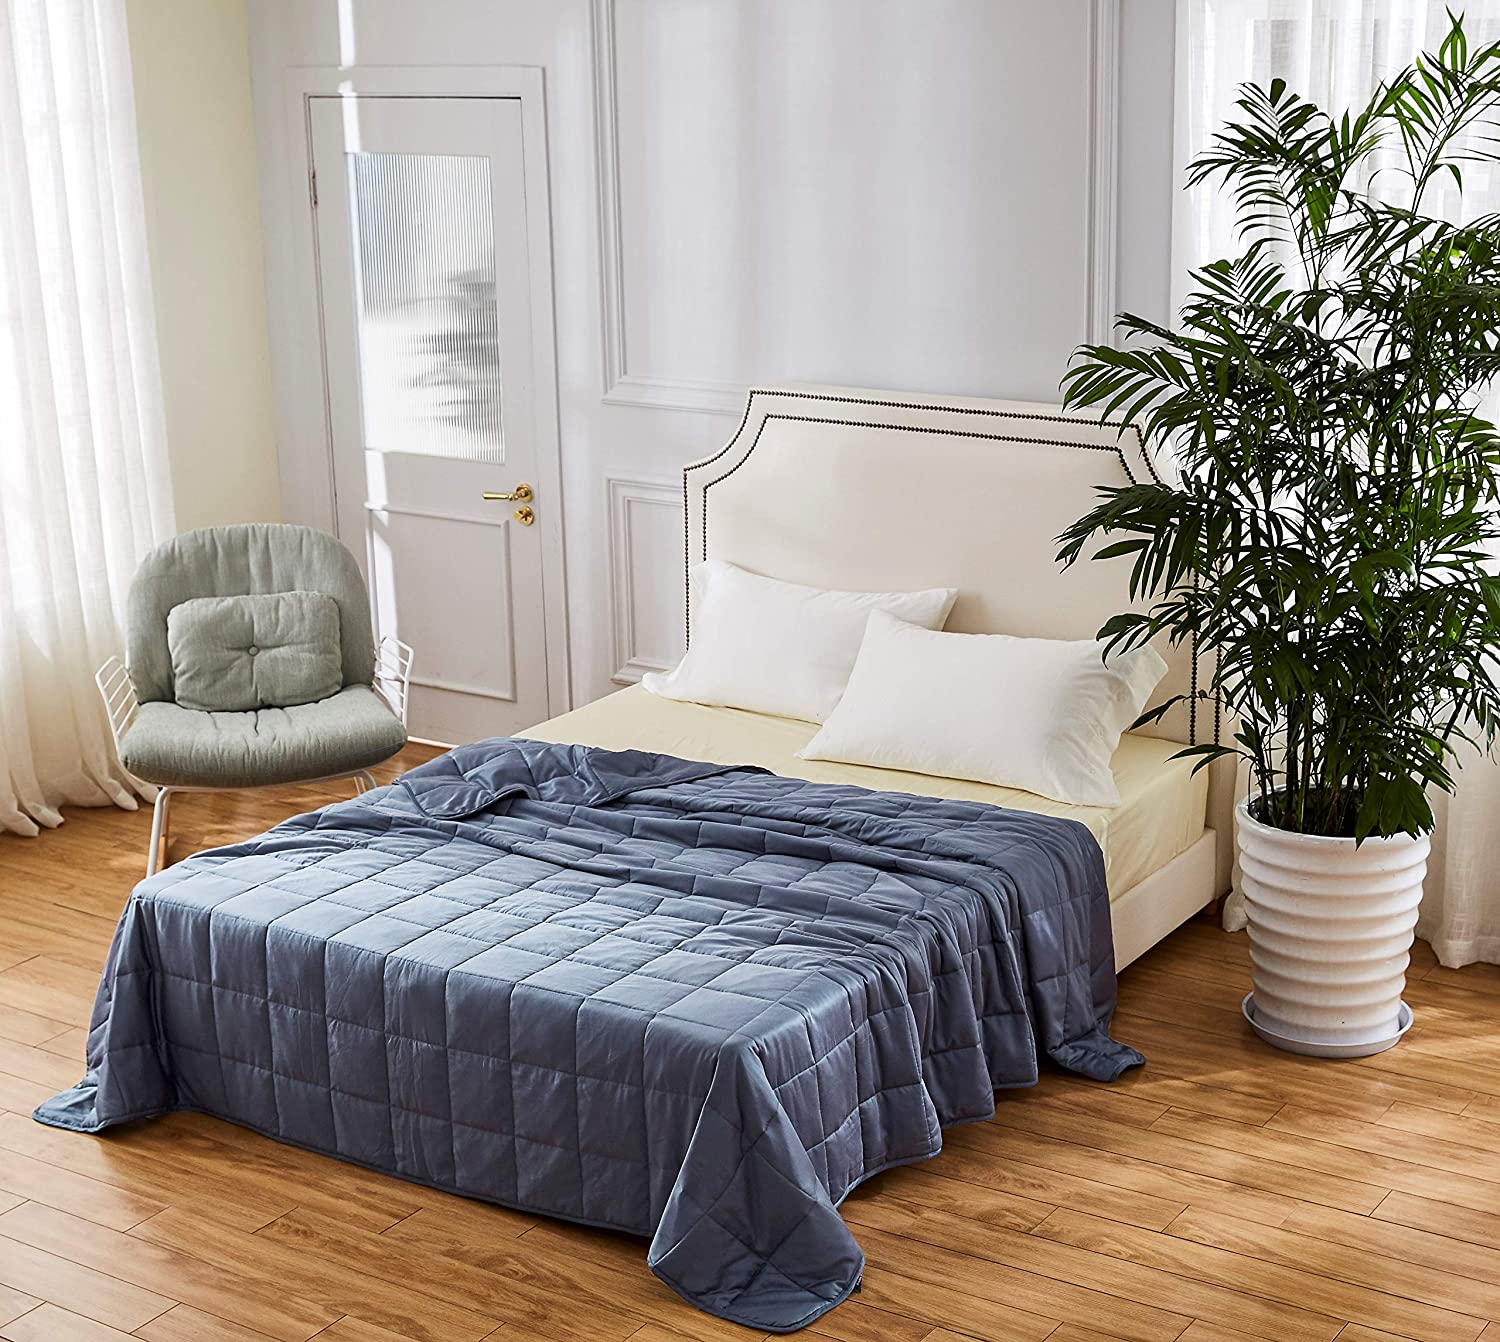 HomeSmart Products King Size Cooling Weighted Blanket - 25lbs 88x104 - The Only True King Size Bamboo Cooling Weighted Comforter On The Market - Perfect for Couples